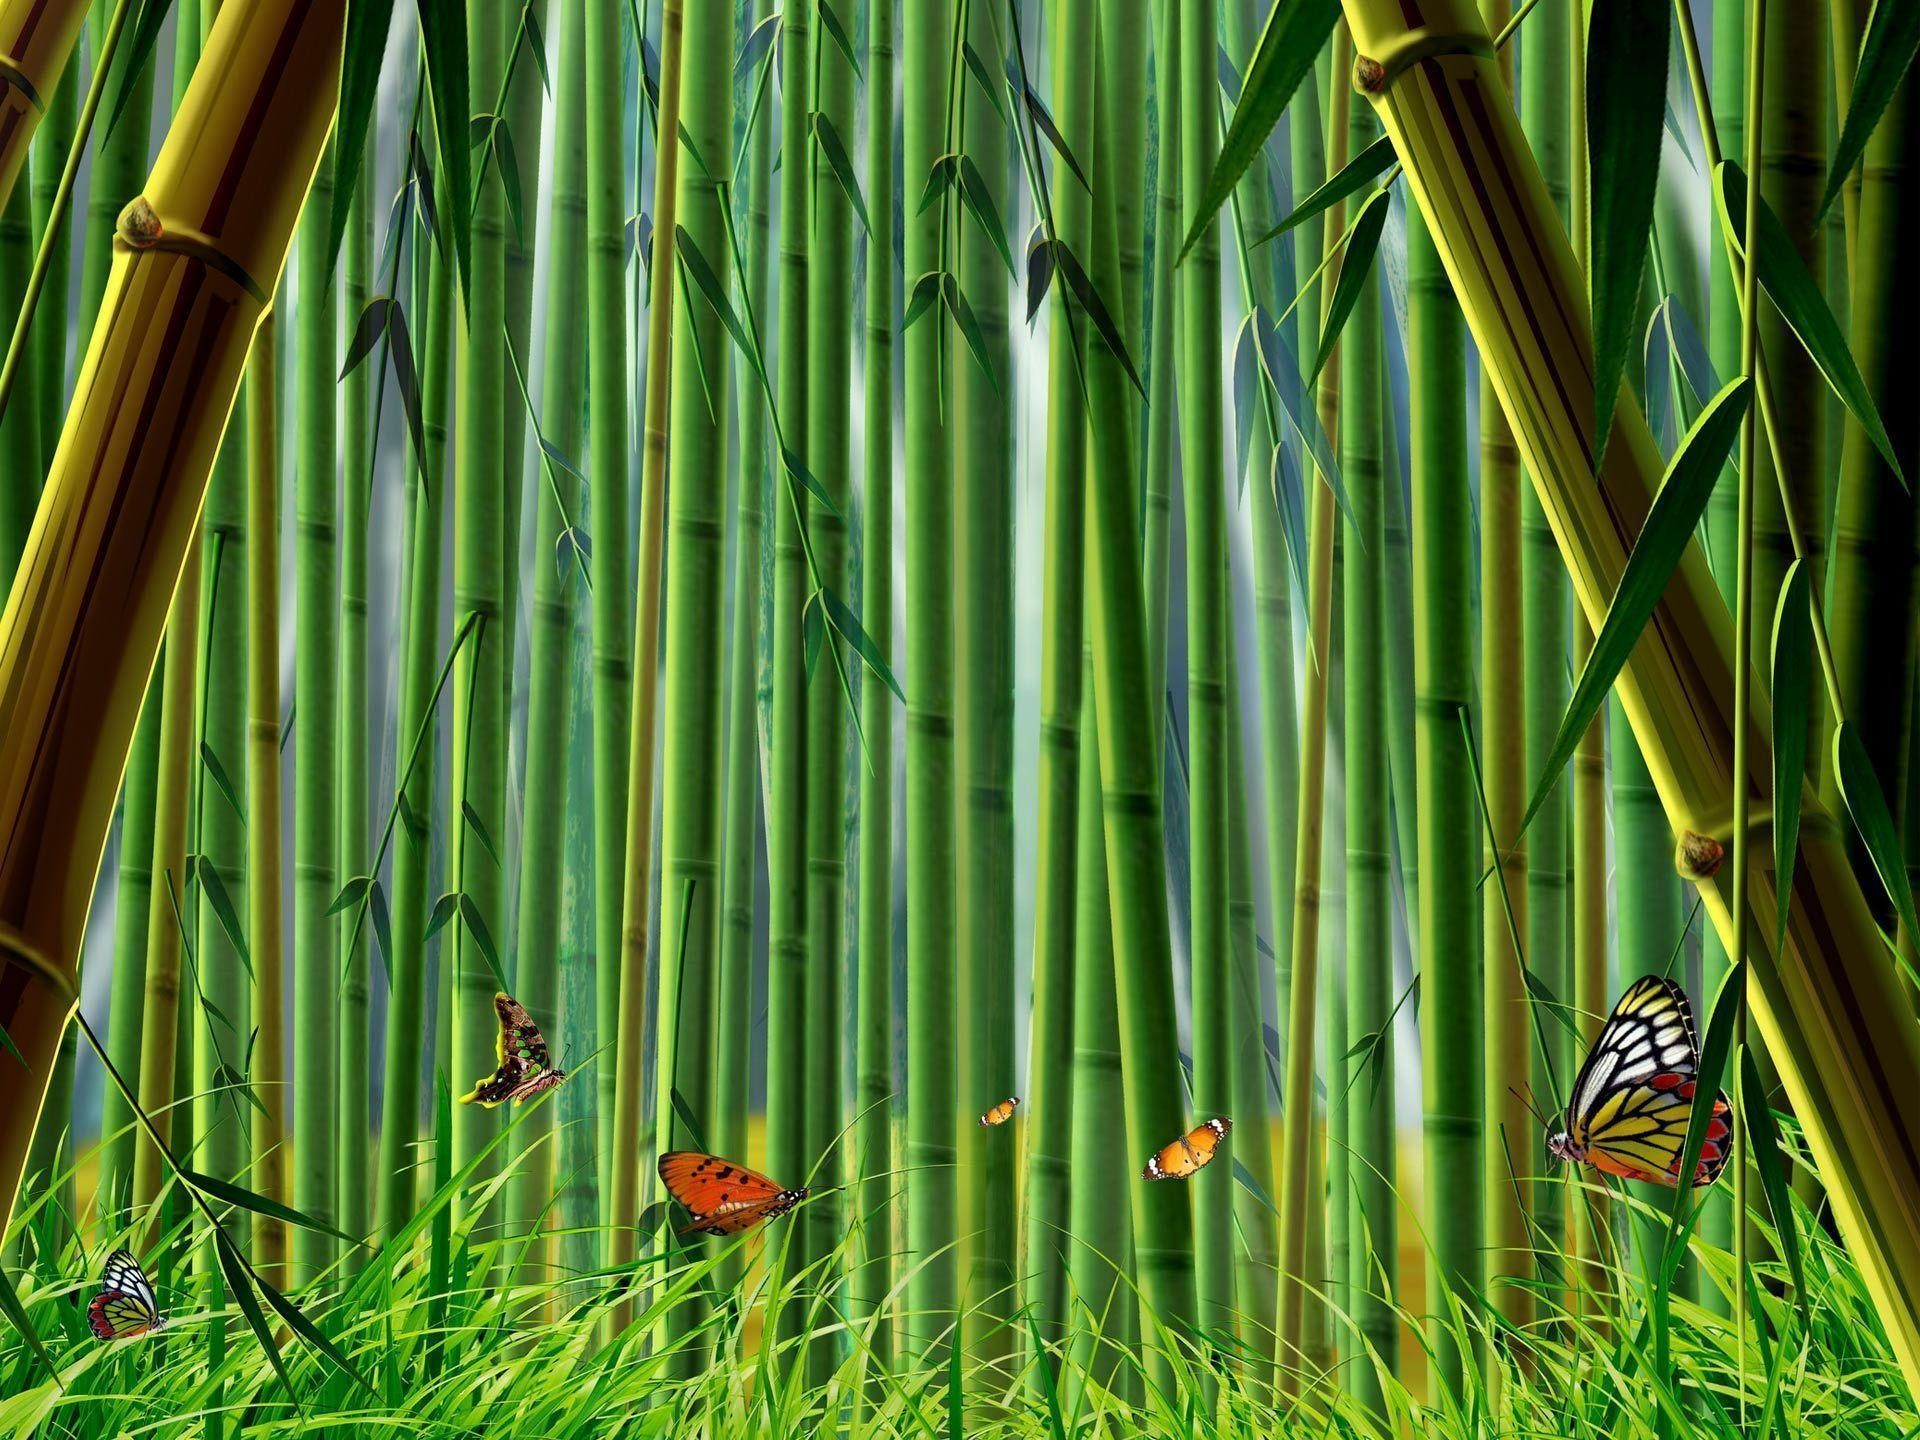 Desktop Wallpaper · Gallery · Computers · Bamboo Forest   Free .